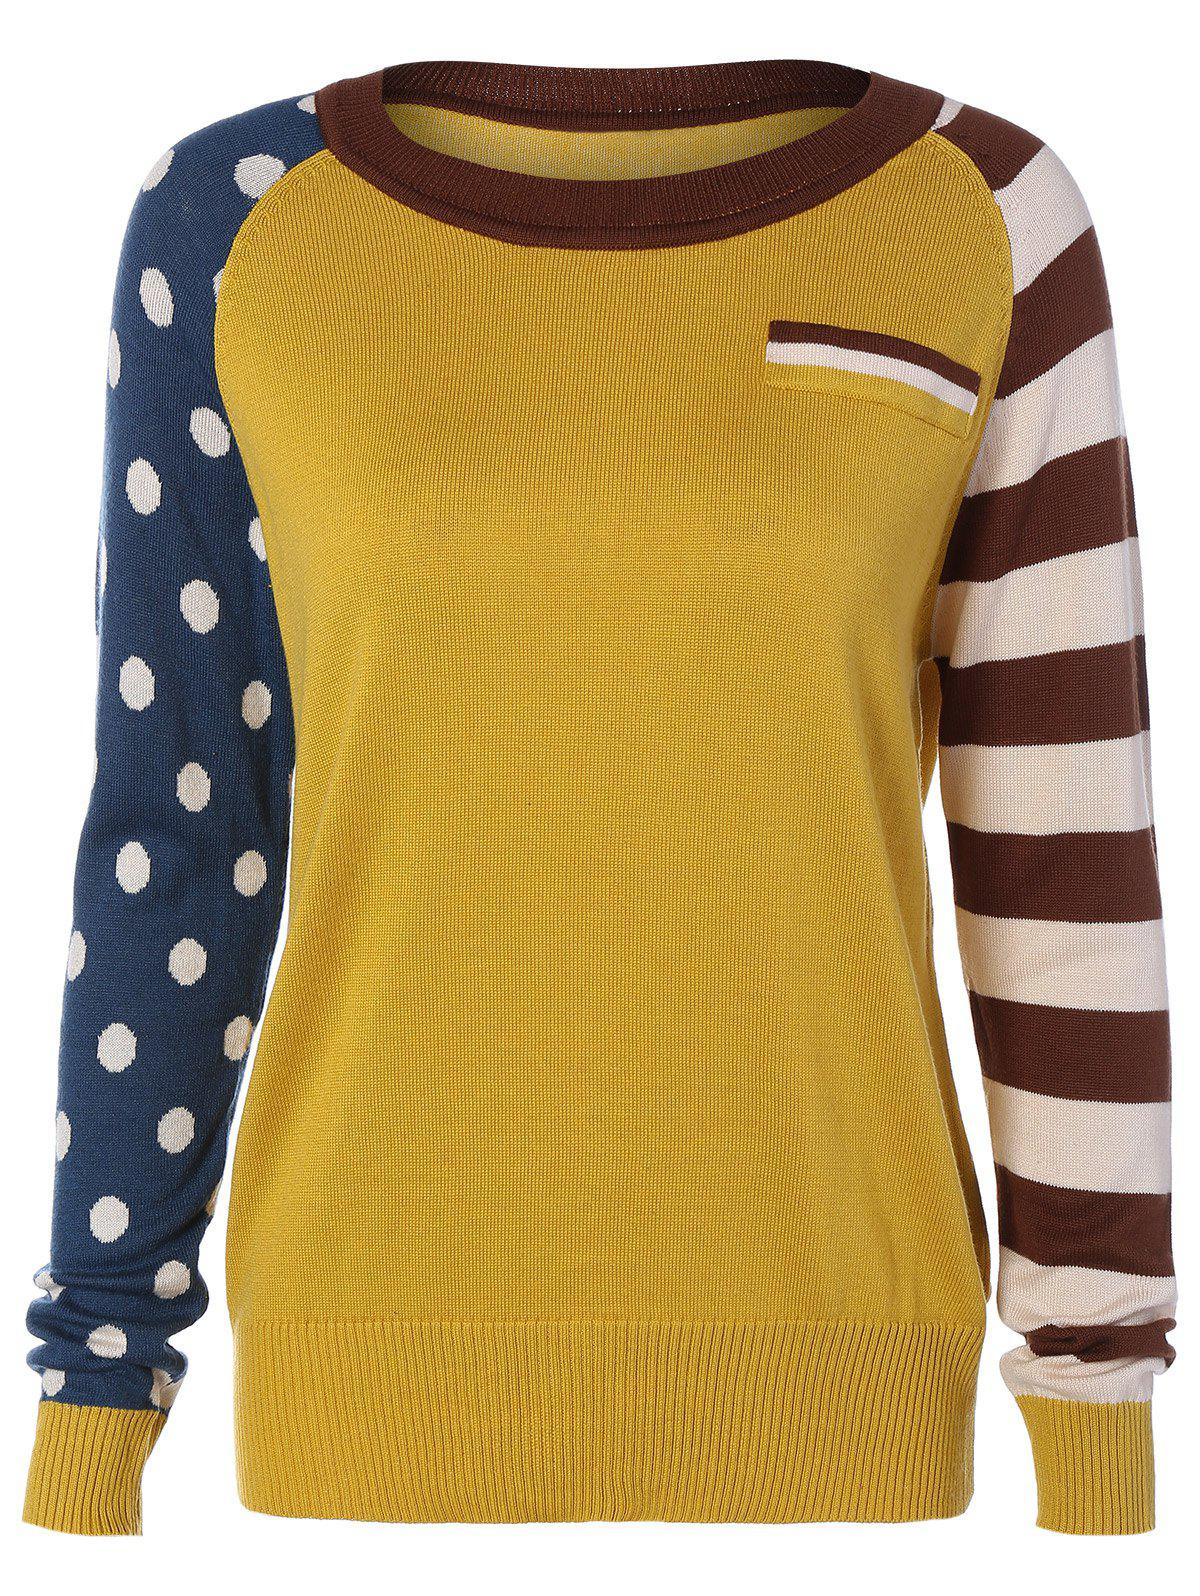 2018 Polka Dot and Striped Sleeve Sweater YELLOW ONE SIZE In ...